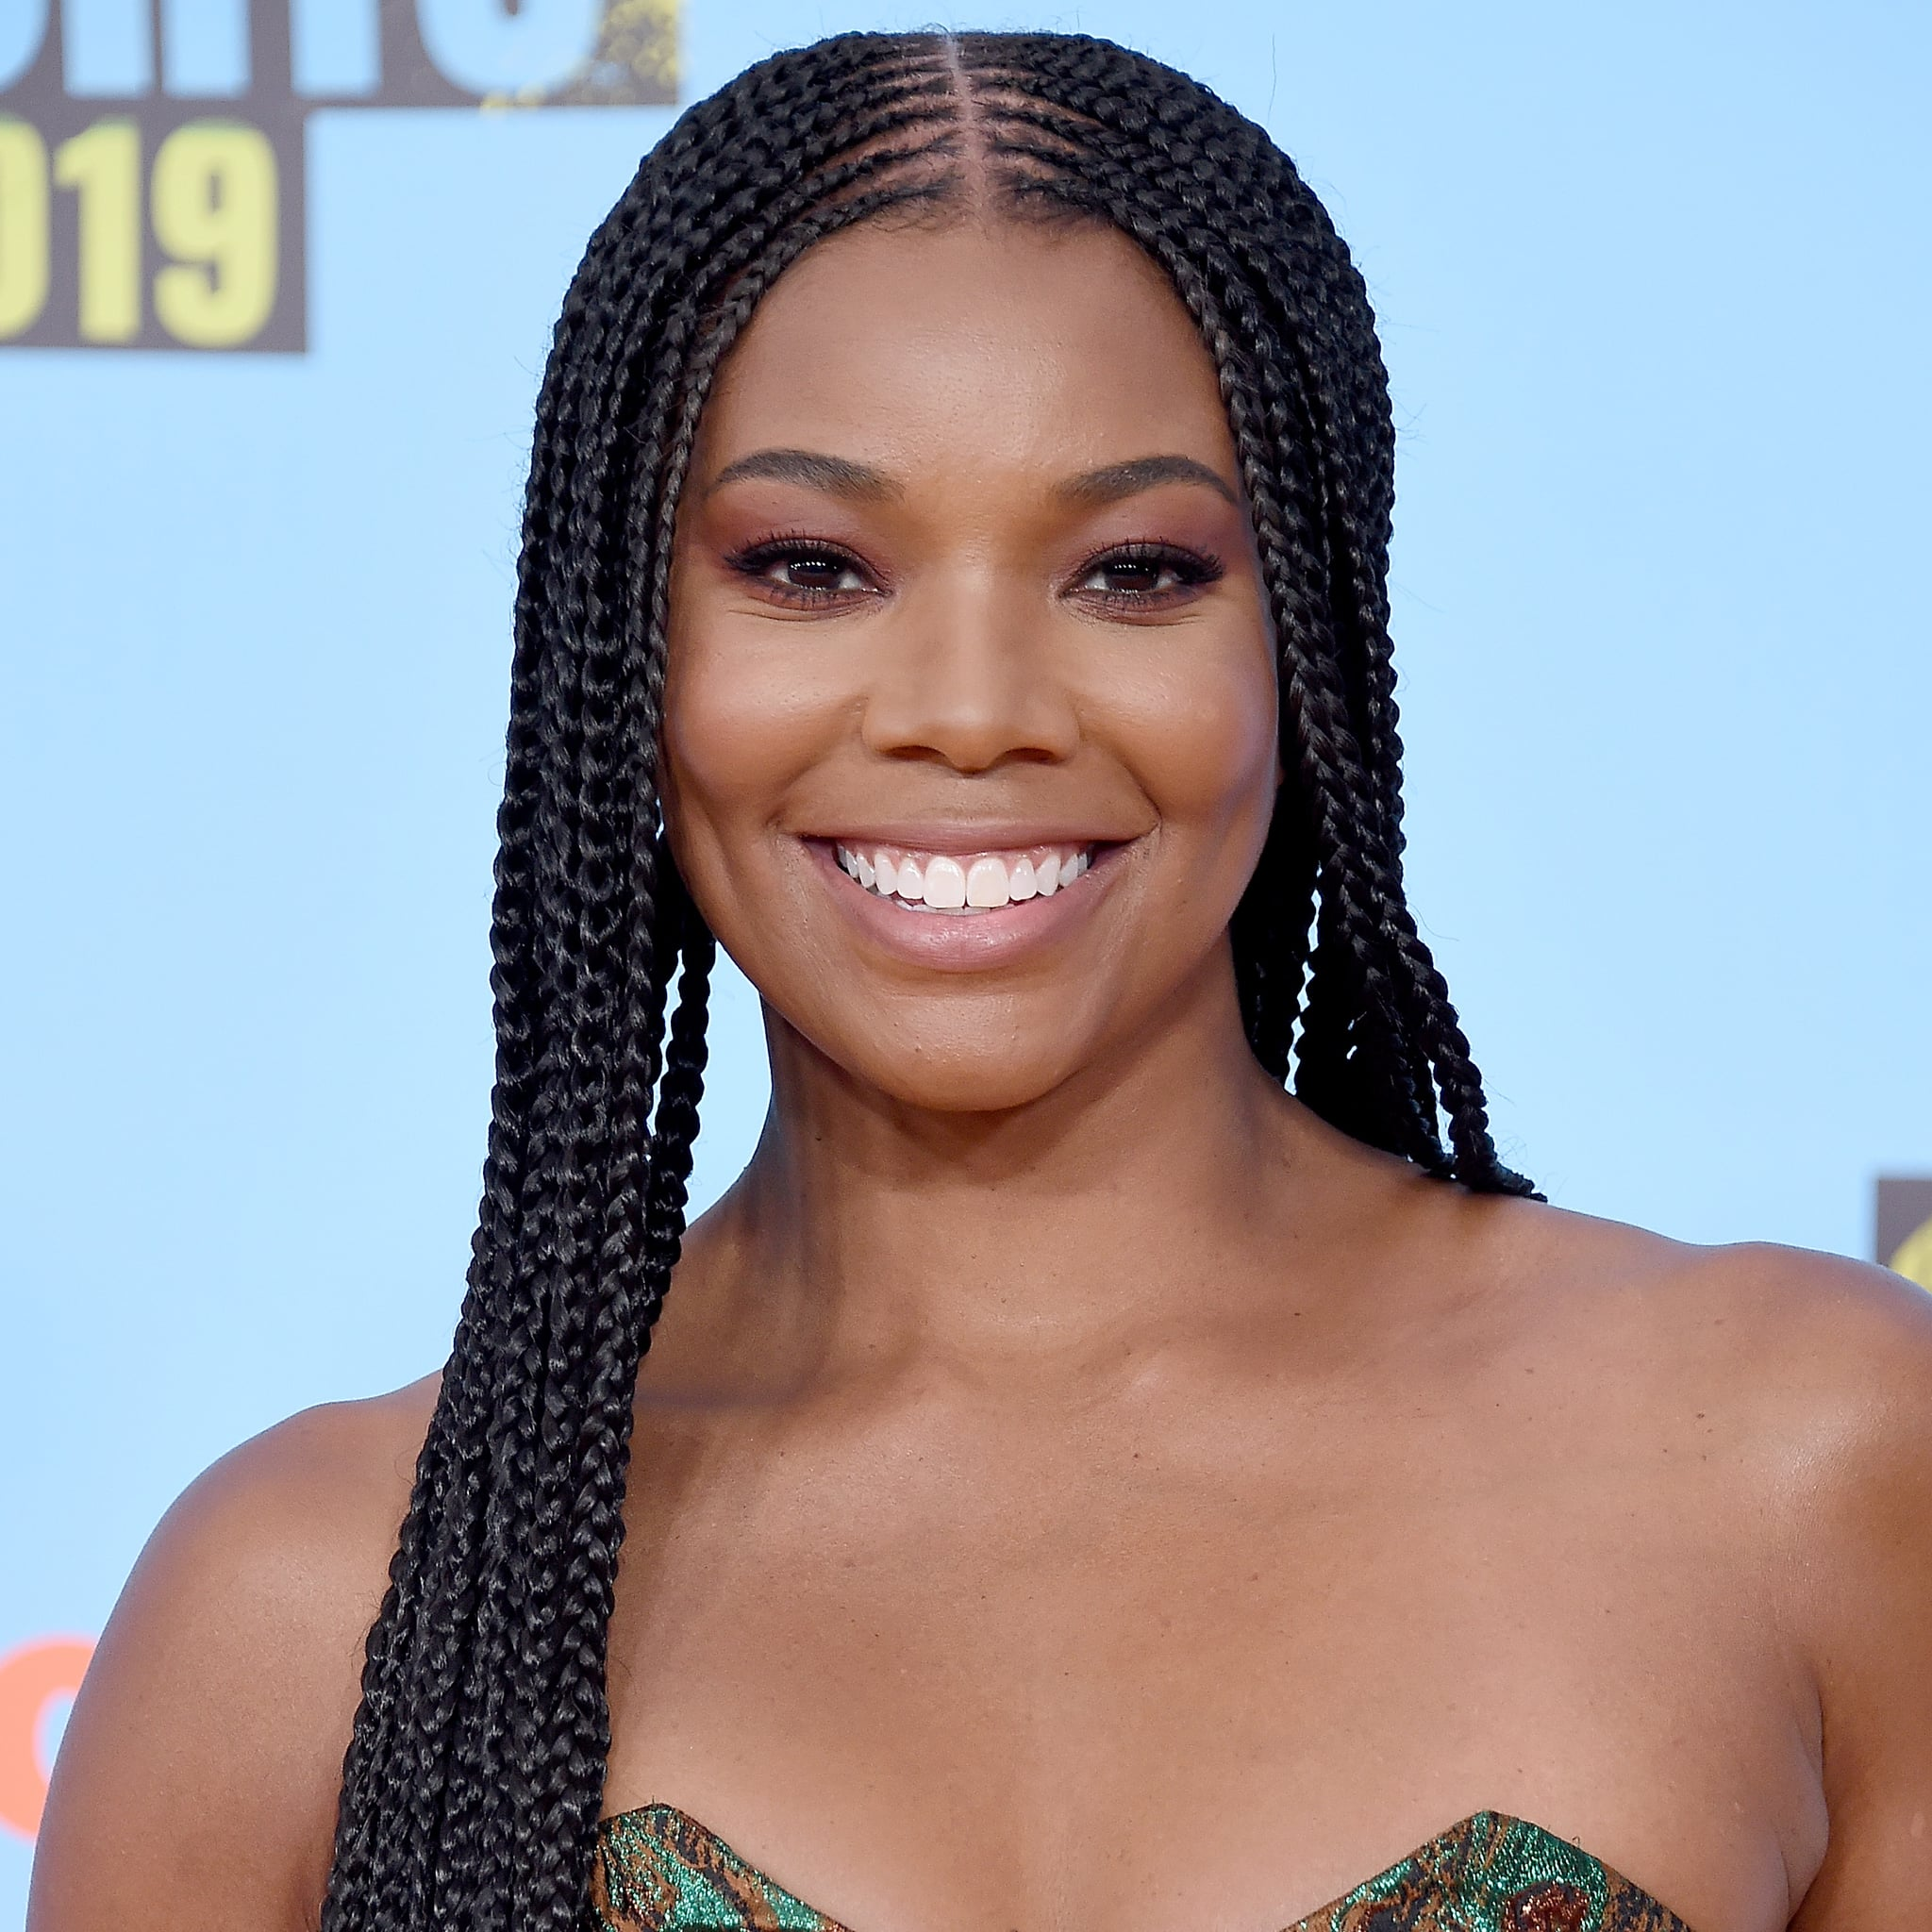 Gabrielle Union's Latest Look Is Making Her Fans Excited – Check It Out Here